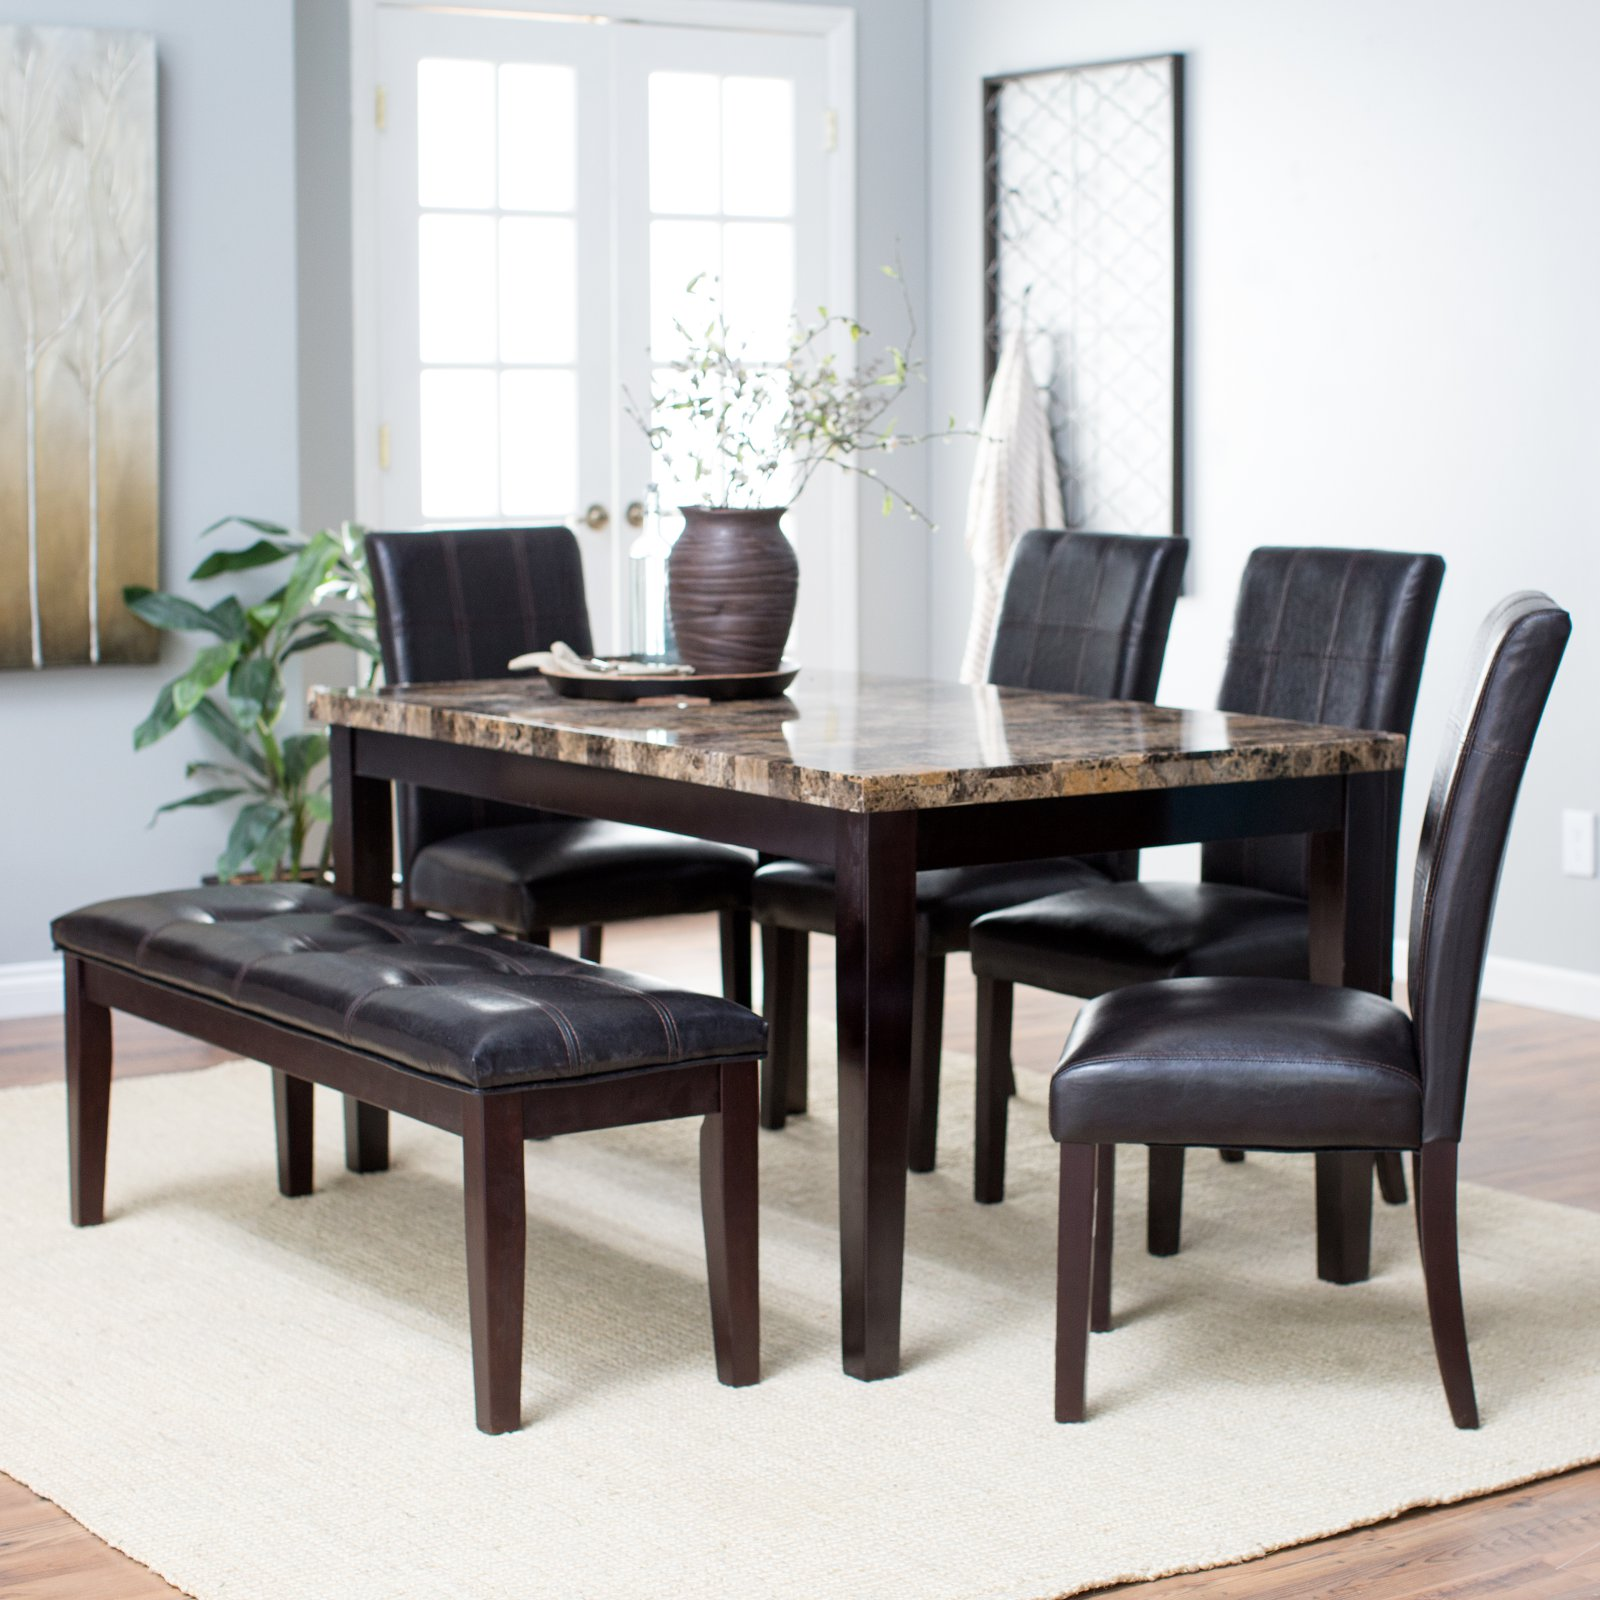 Lovely Finley Home Palazzo 6 Piece Dining Set With Bench